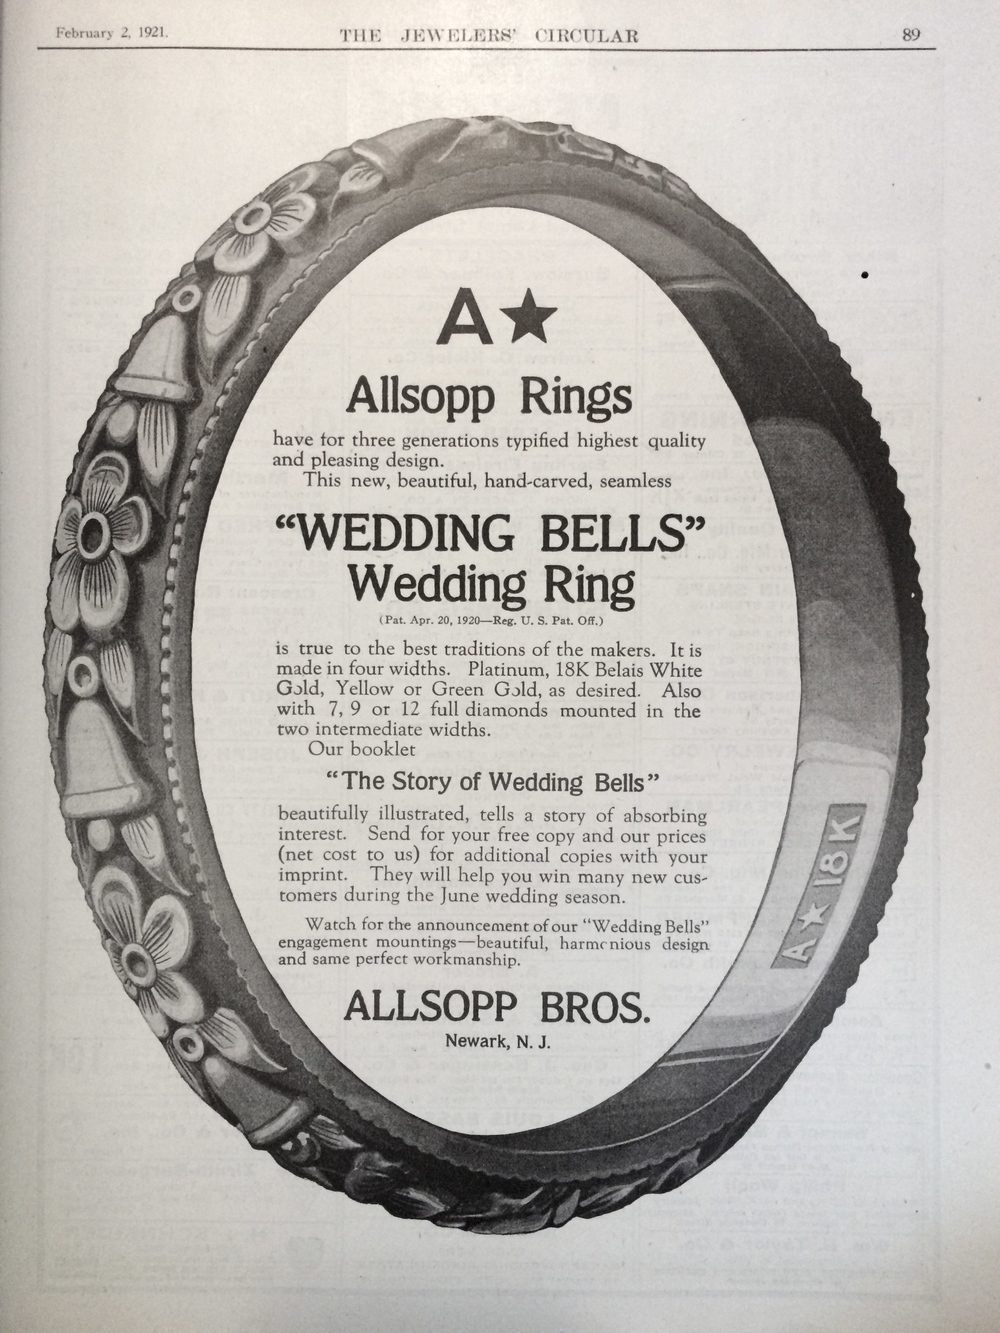 """Allsop rings have for three generations typified highest quality and pleasing design"". Allsop Bros advertisement from 1921, Jeweler's Circular."